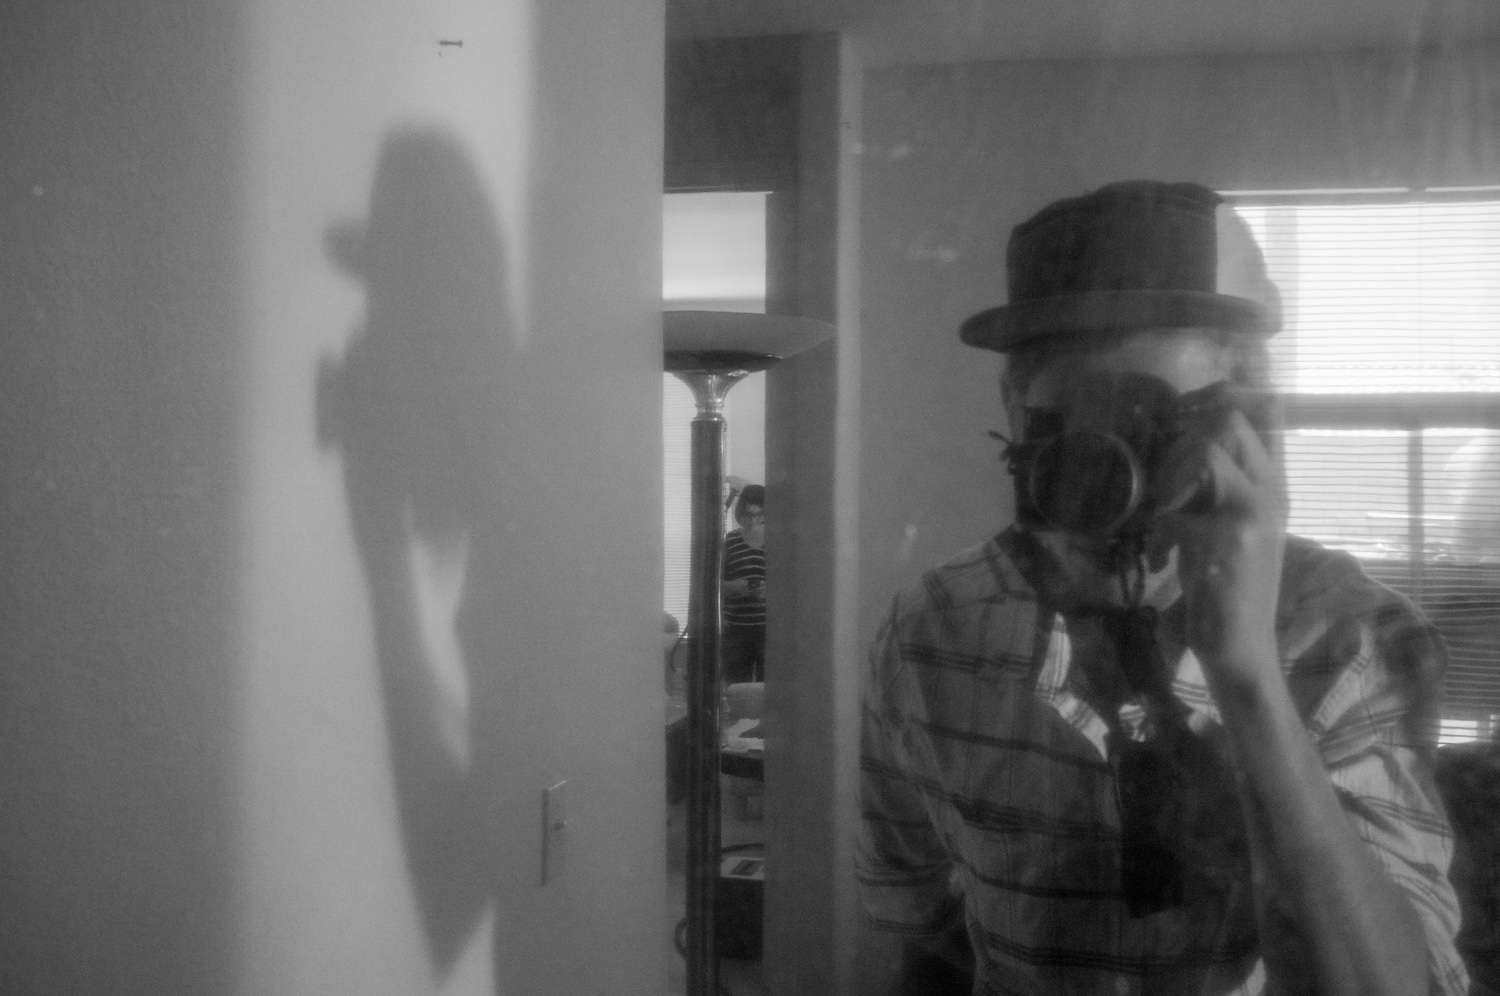 Just a shadow of a man. Got this completely by accident, as I was trying to shoot the ladies reflection